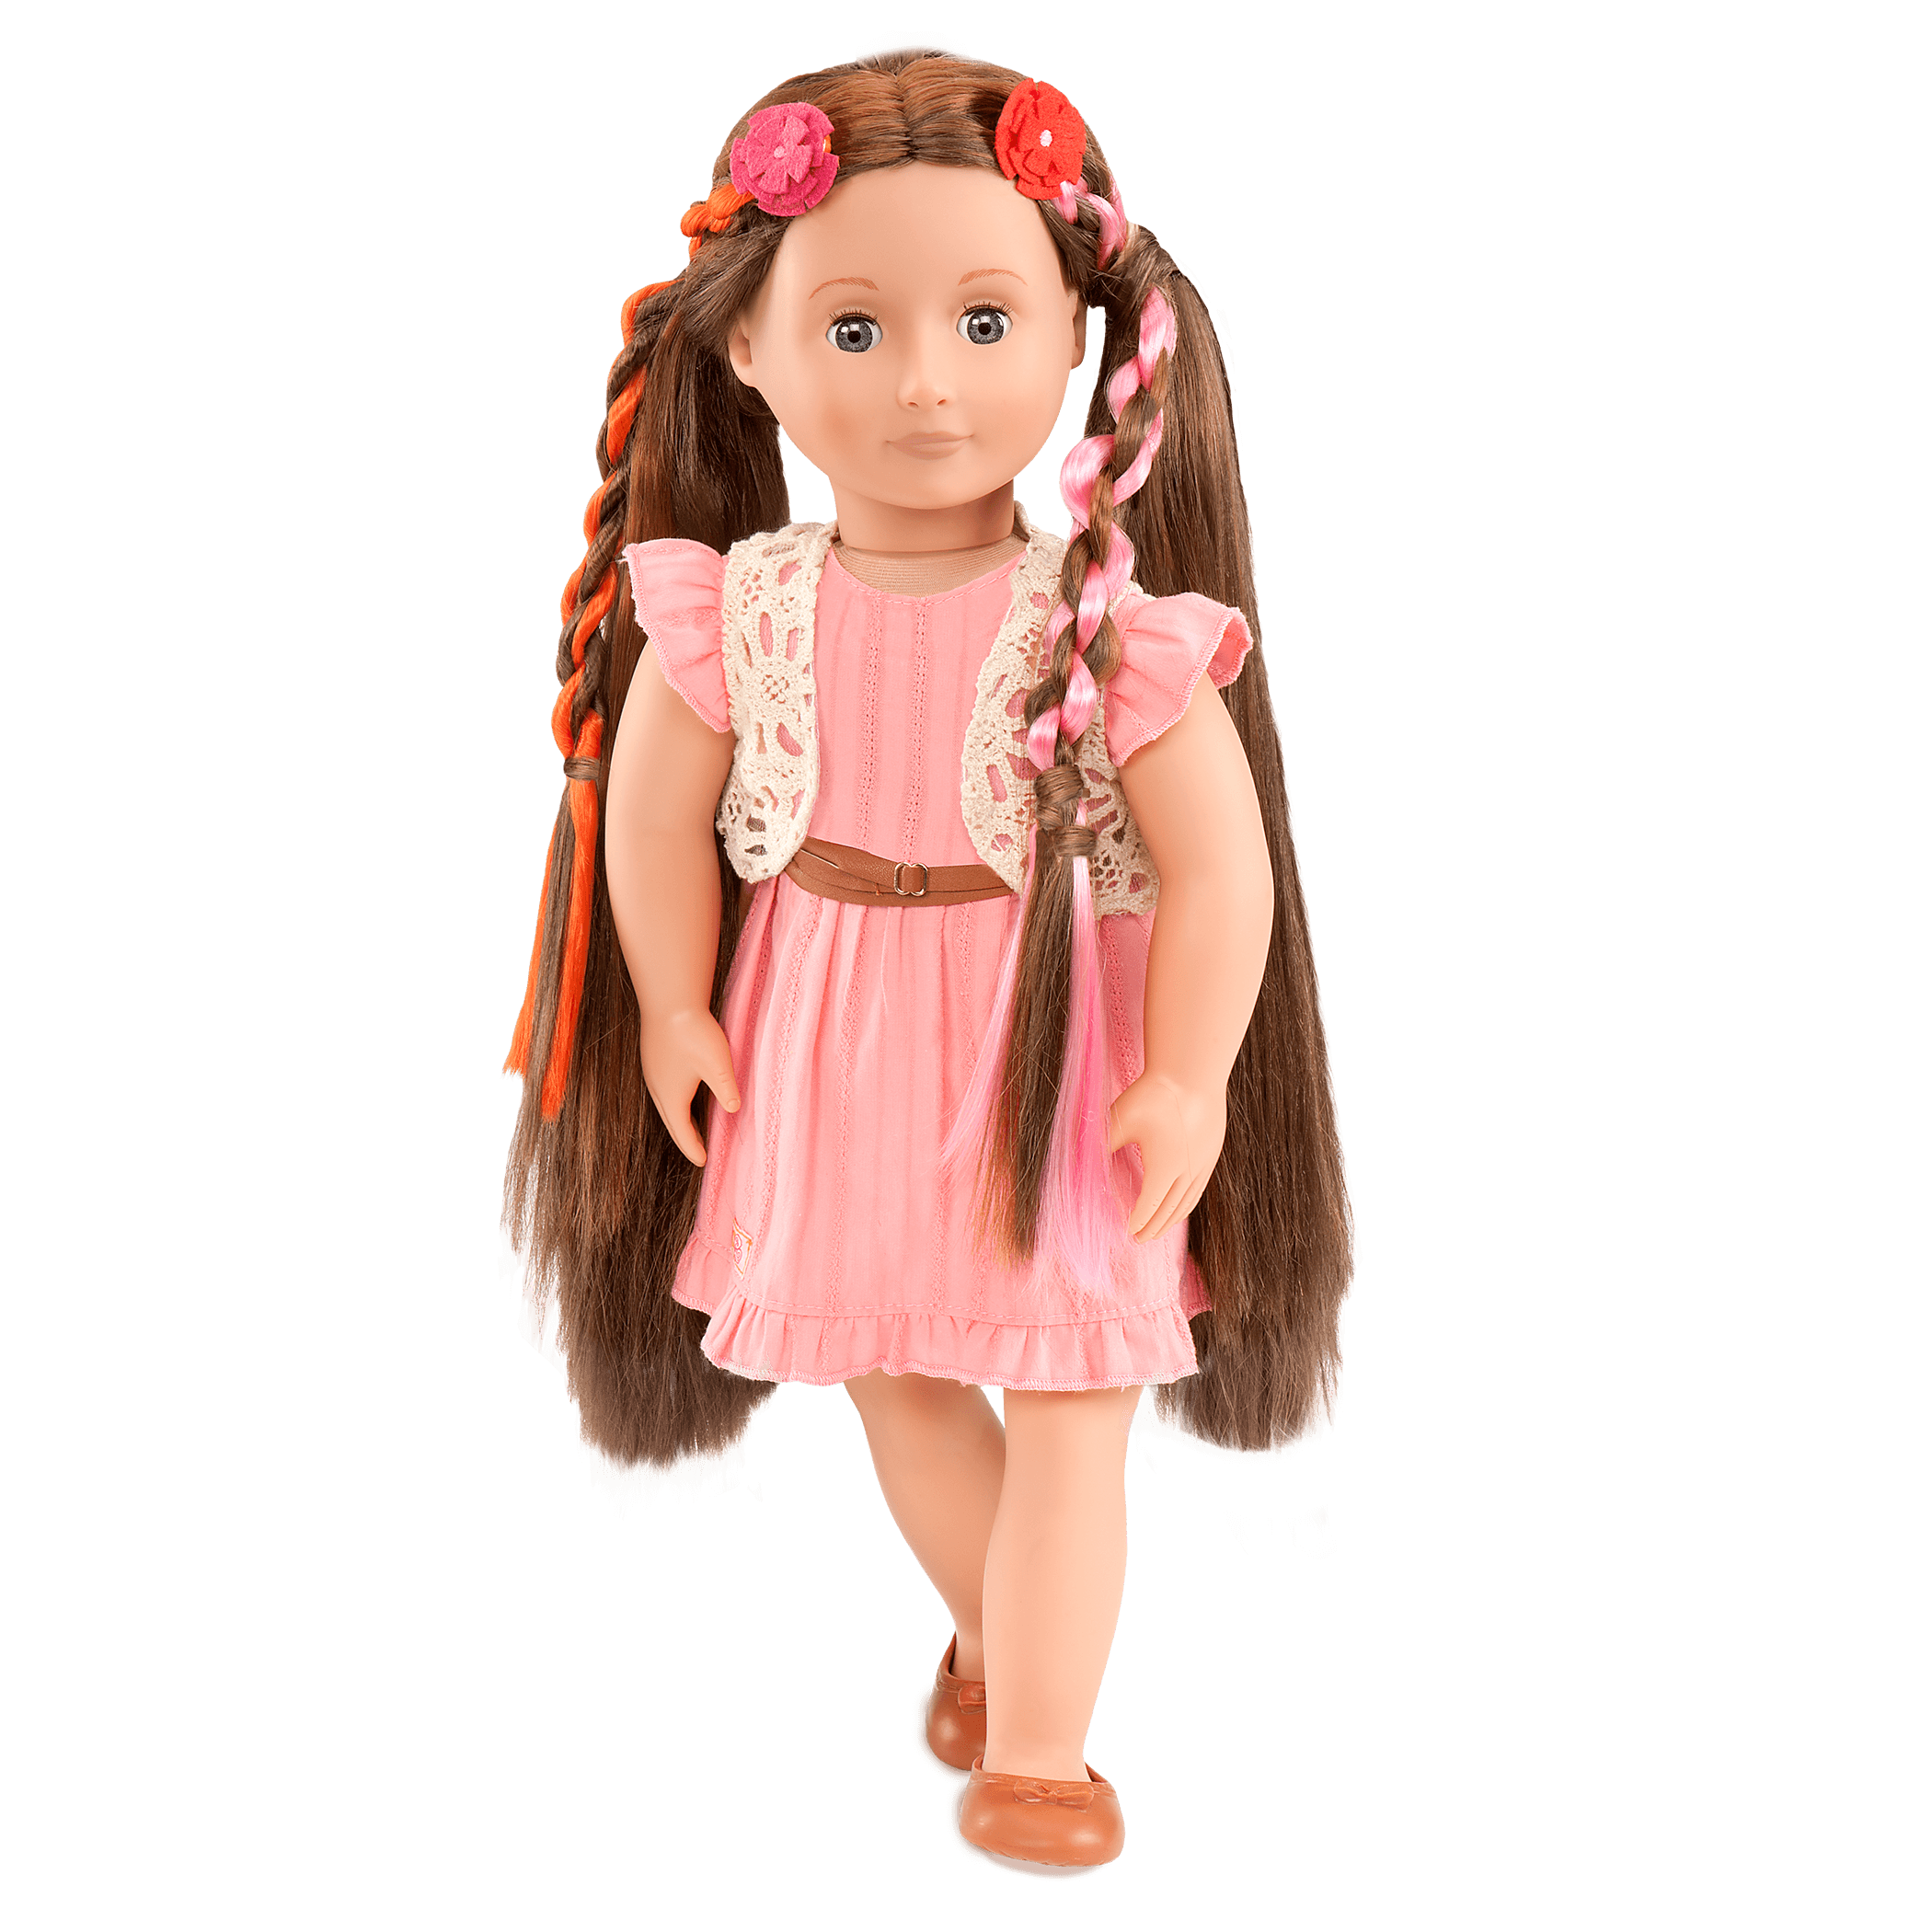 BD37017A Parker Pink Dress Hairplay Doll03